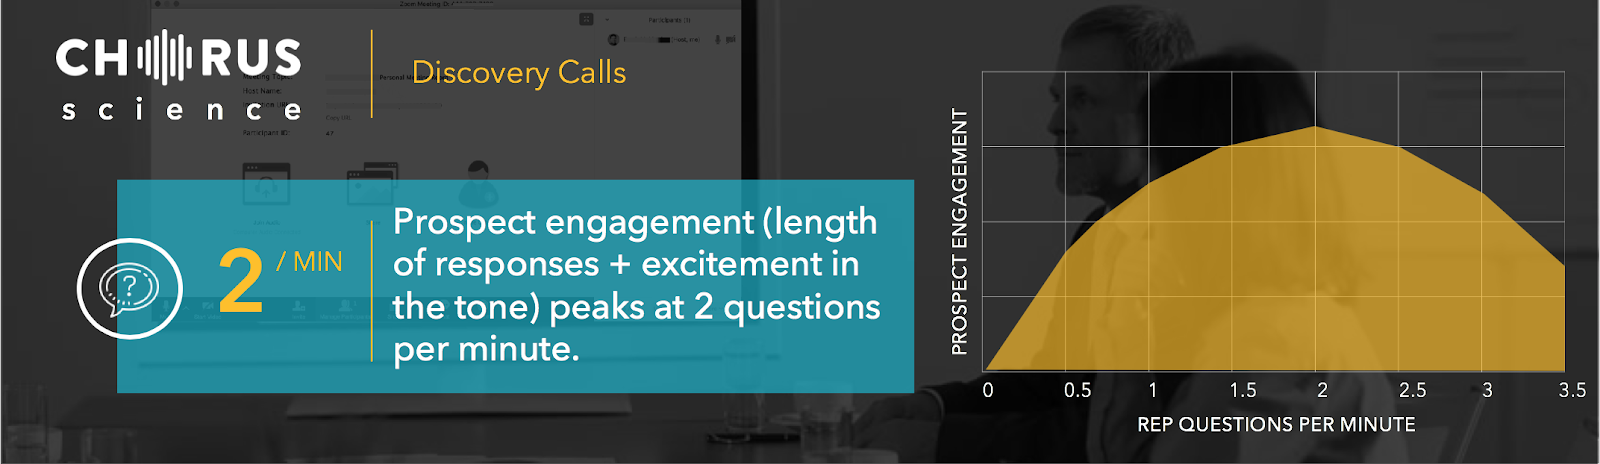 in discovery calls, ask 2 questions per minute to keep a prospect engaged.